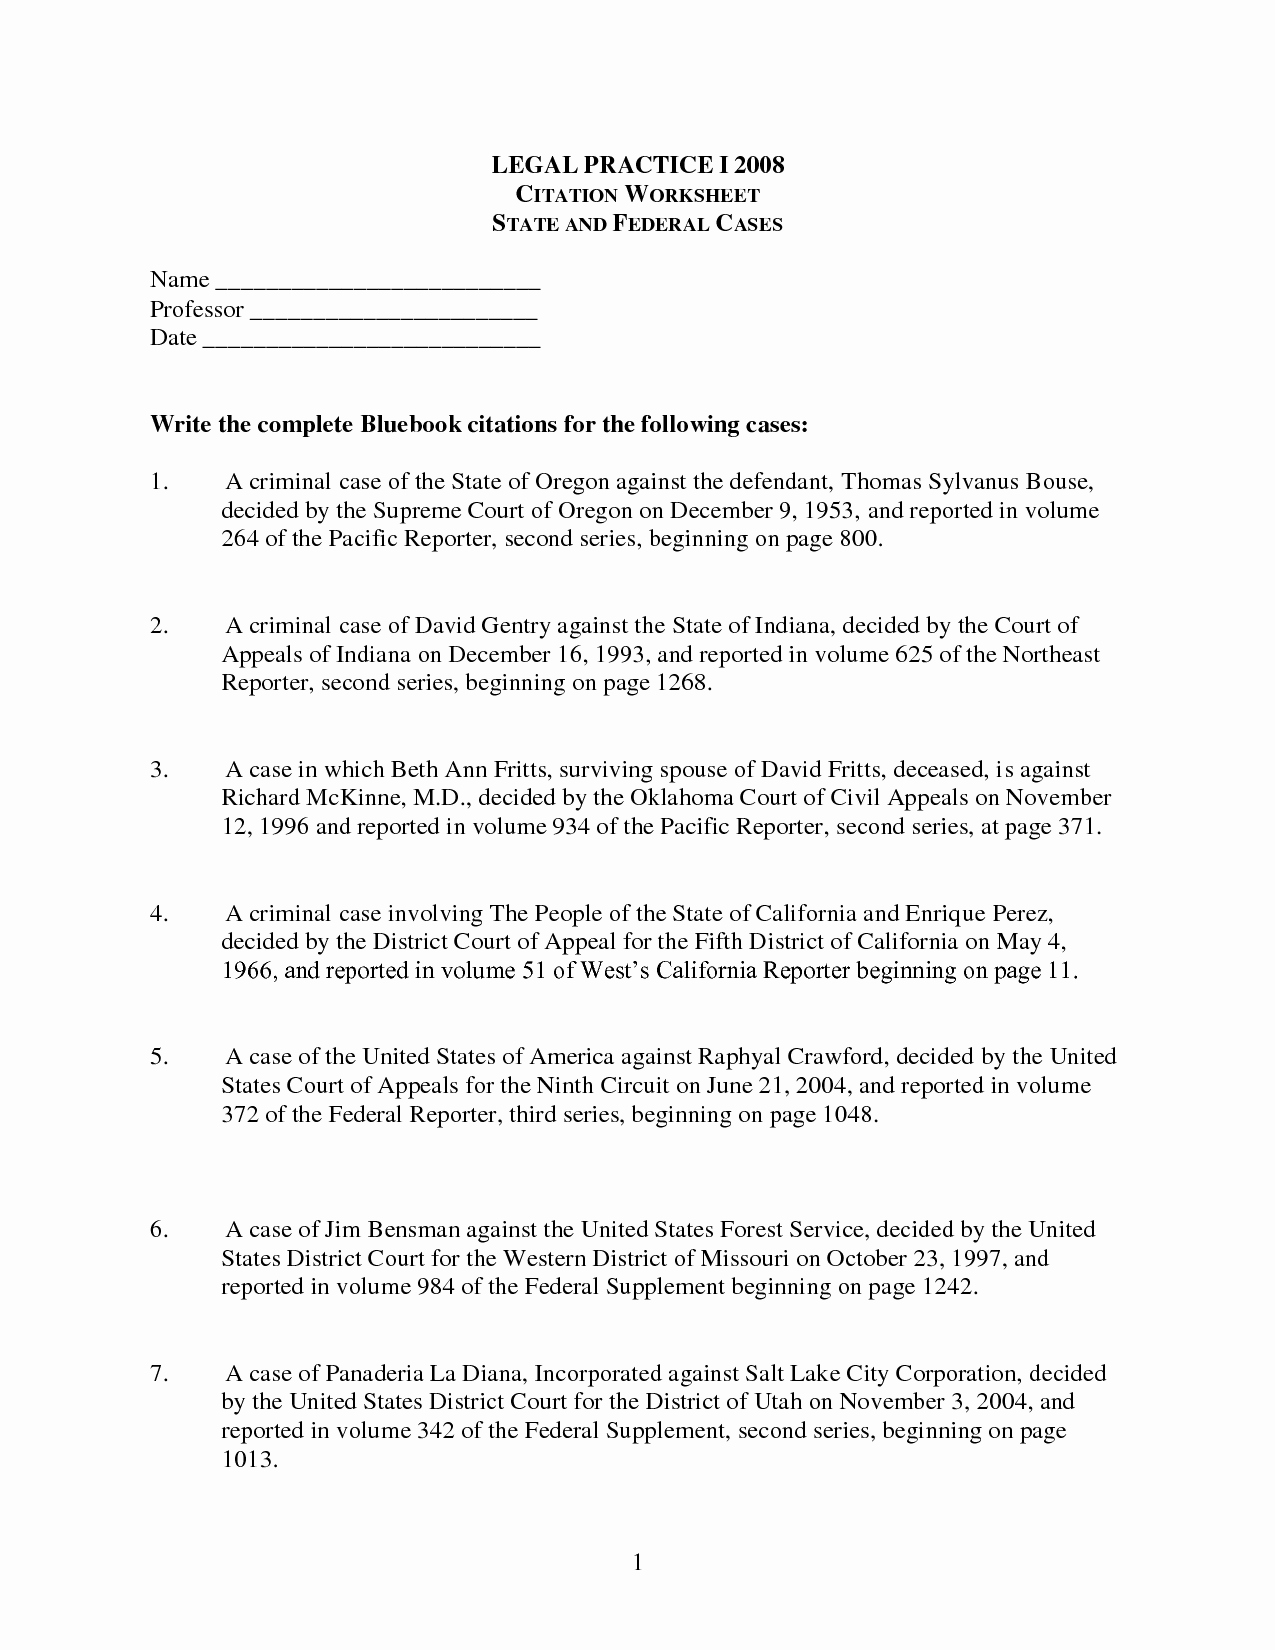 Bibliography Practice Worksheets New 14 Best Of Bibliography Practice Worksheet